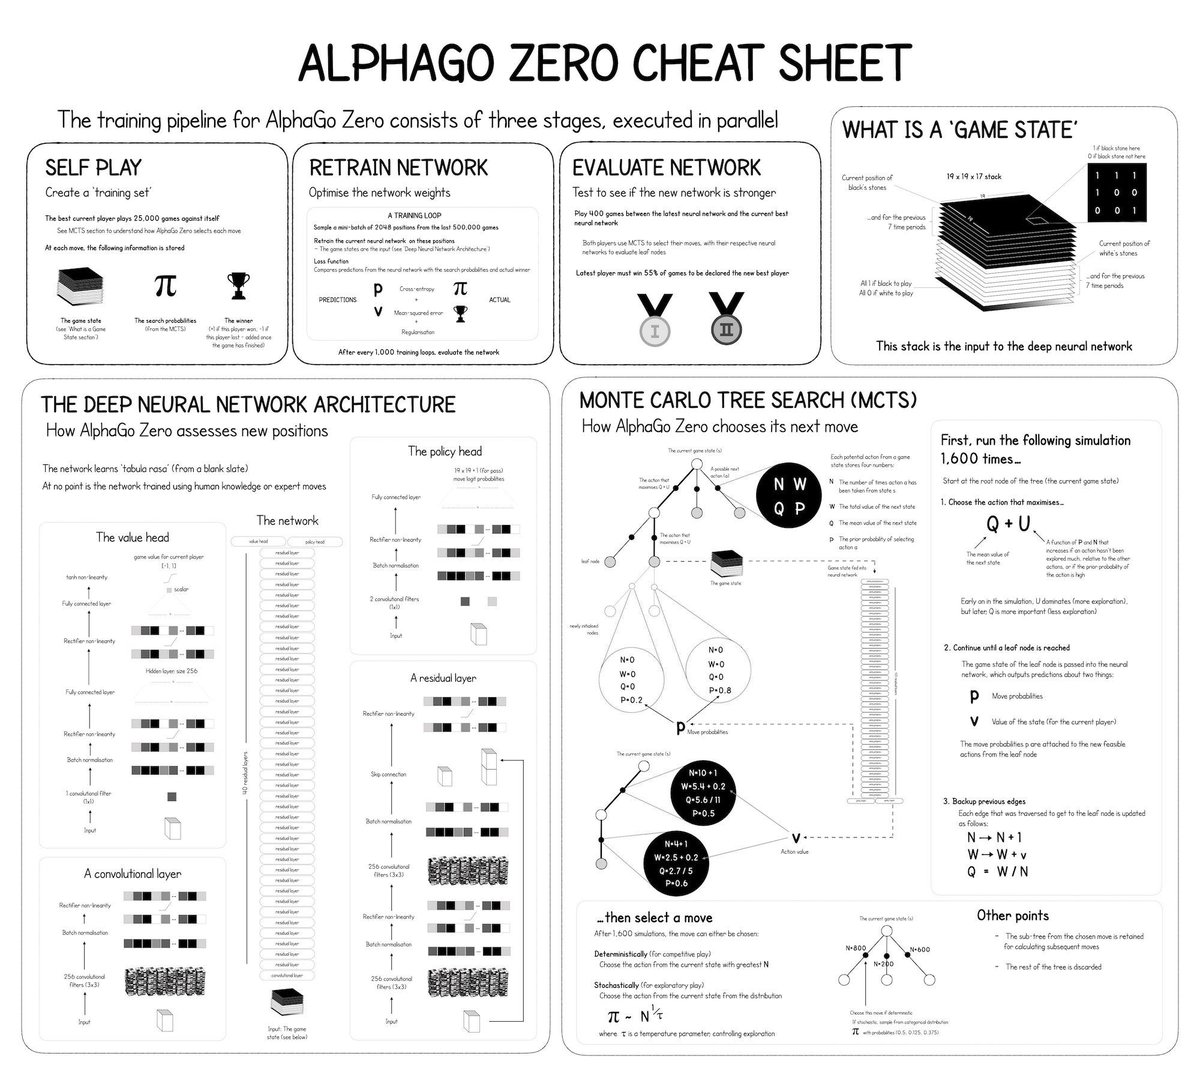 #ReinforcementLearning and #DeepLearning — Explained in One Picture — with this AlphaGo Zero cheat sheet:  https:// dy.si/1FAEC     ——————— #BigData #DataScience #TPU #TensorFlow #MachineLearning #AI #Algorithms #abdsc ——————— +See this book:  https:// amzn.to/2SBpiET    <br>http://pic.twitter.com/JNdnaK1qLy